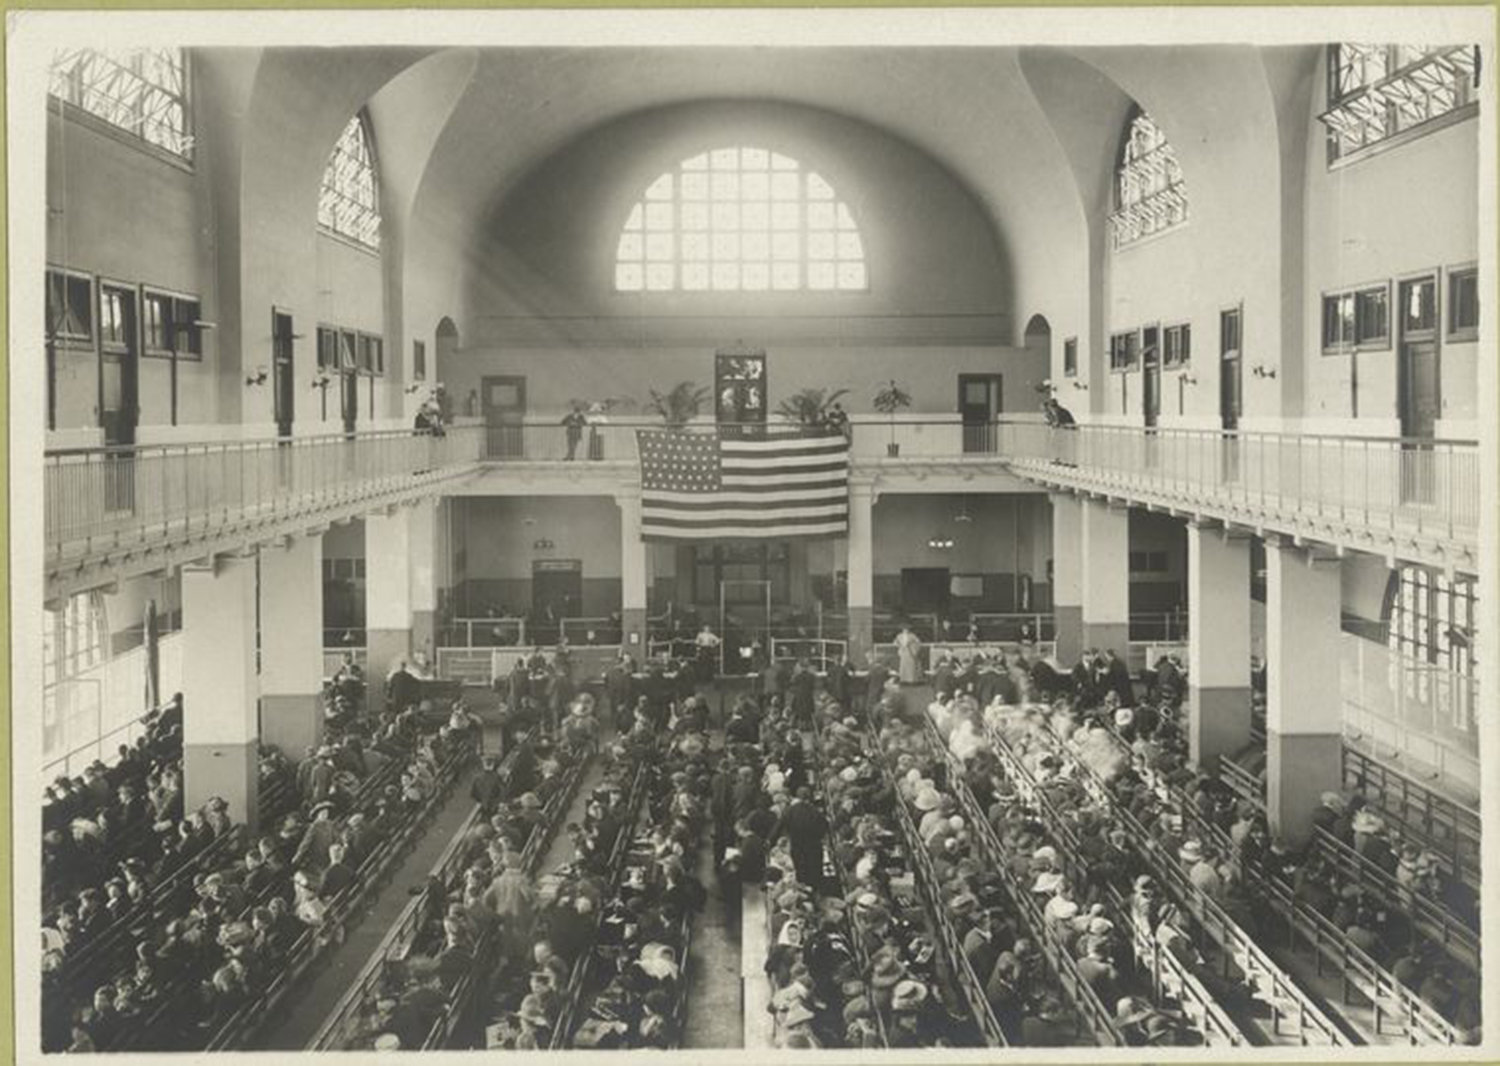 Immigrants seated on long benches, Main Hall, U.S. Immigration Station., Williams, William (1862-1947), NYPL Digital Library, Public Domain Mark